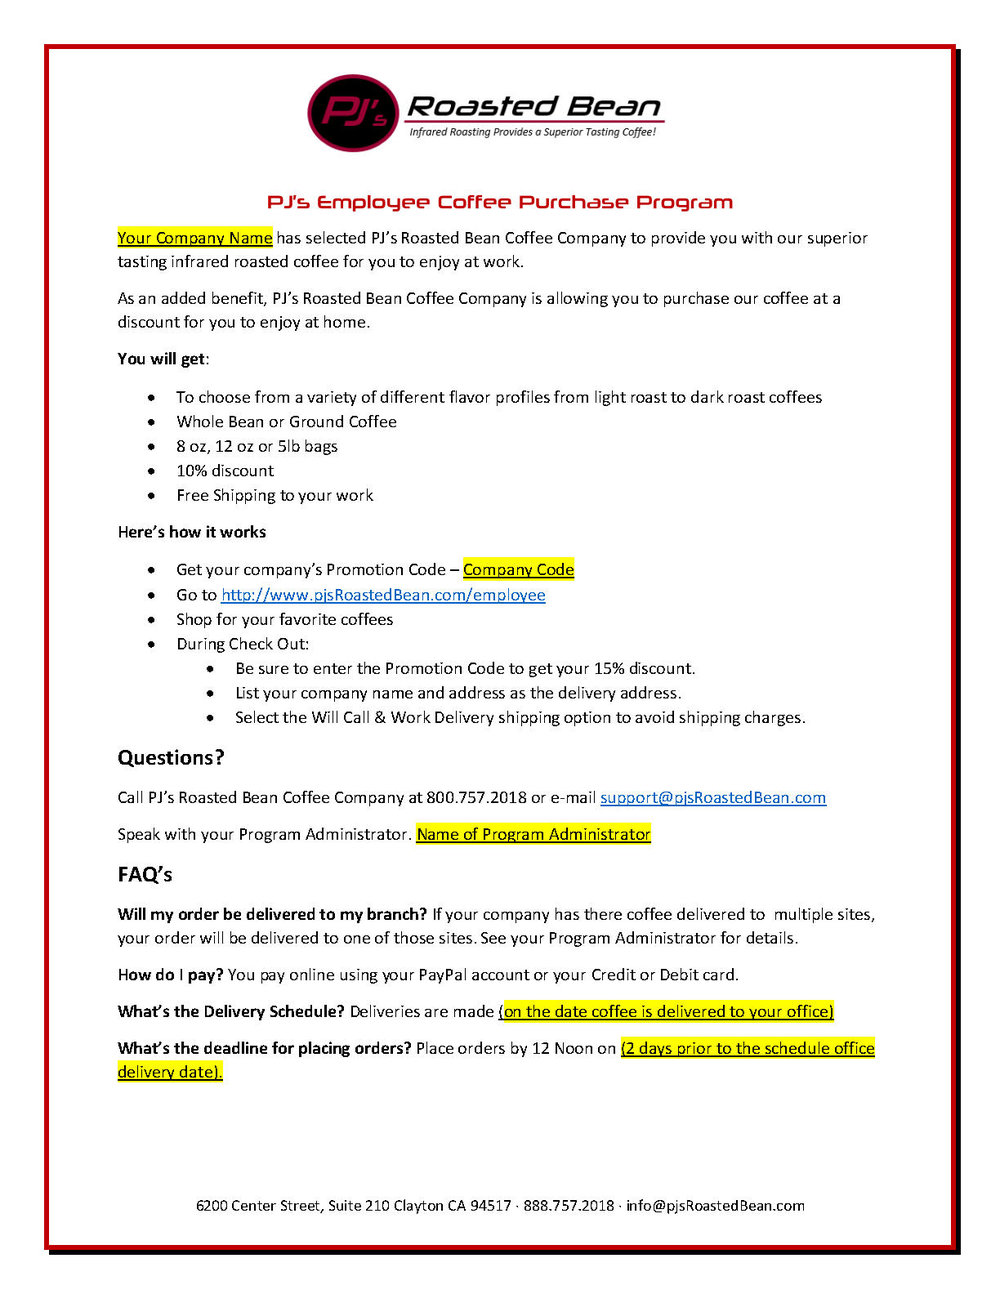 PJ's Roasted Bean Employee Coffee Purchase Program Info Sample